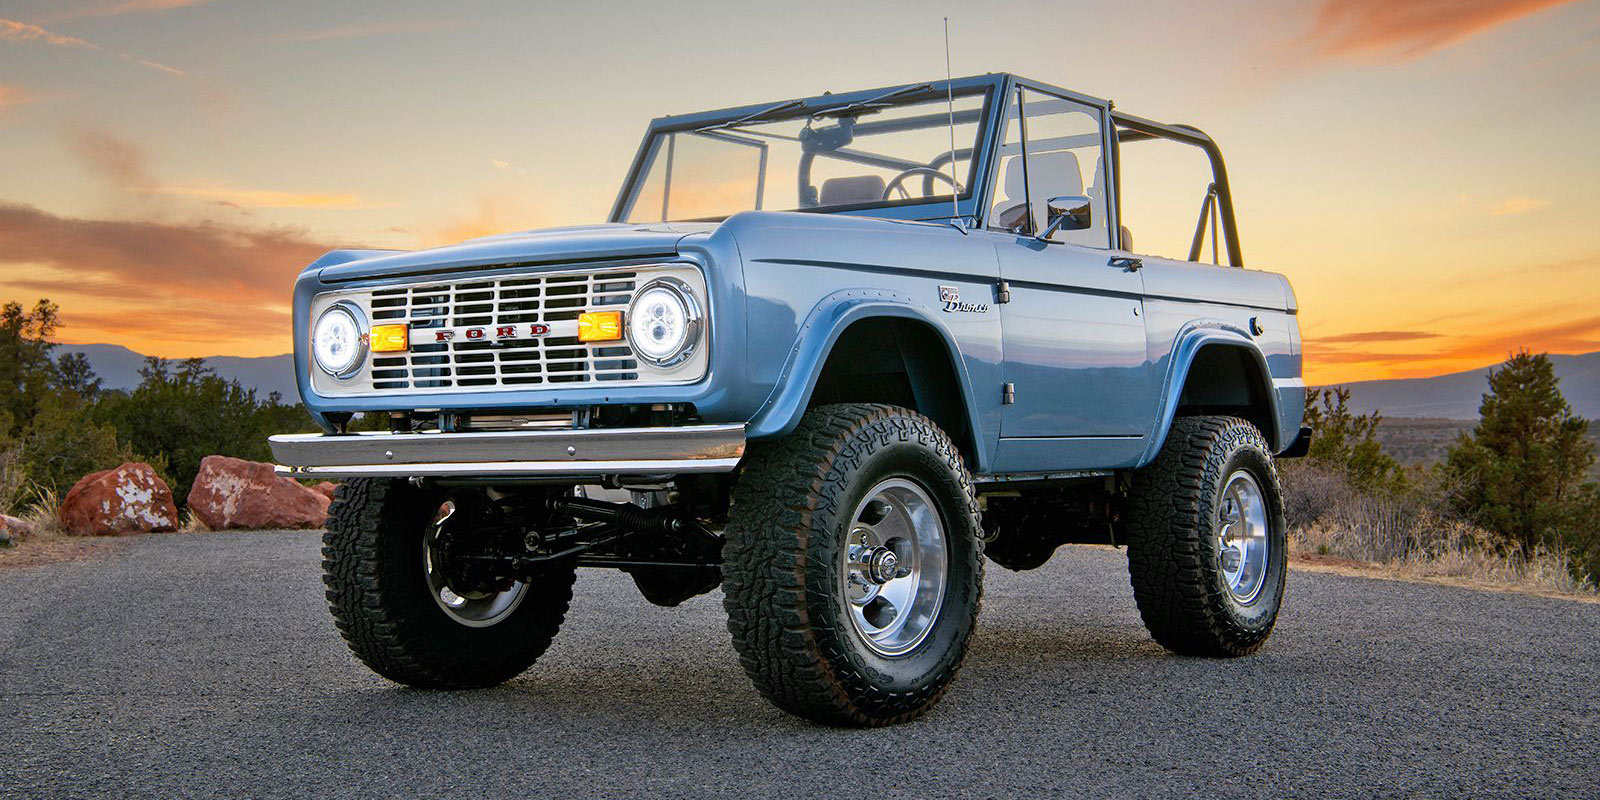 Ford will offer EVs of its iconic models, so what about an electric Bronco?  - Electrek